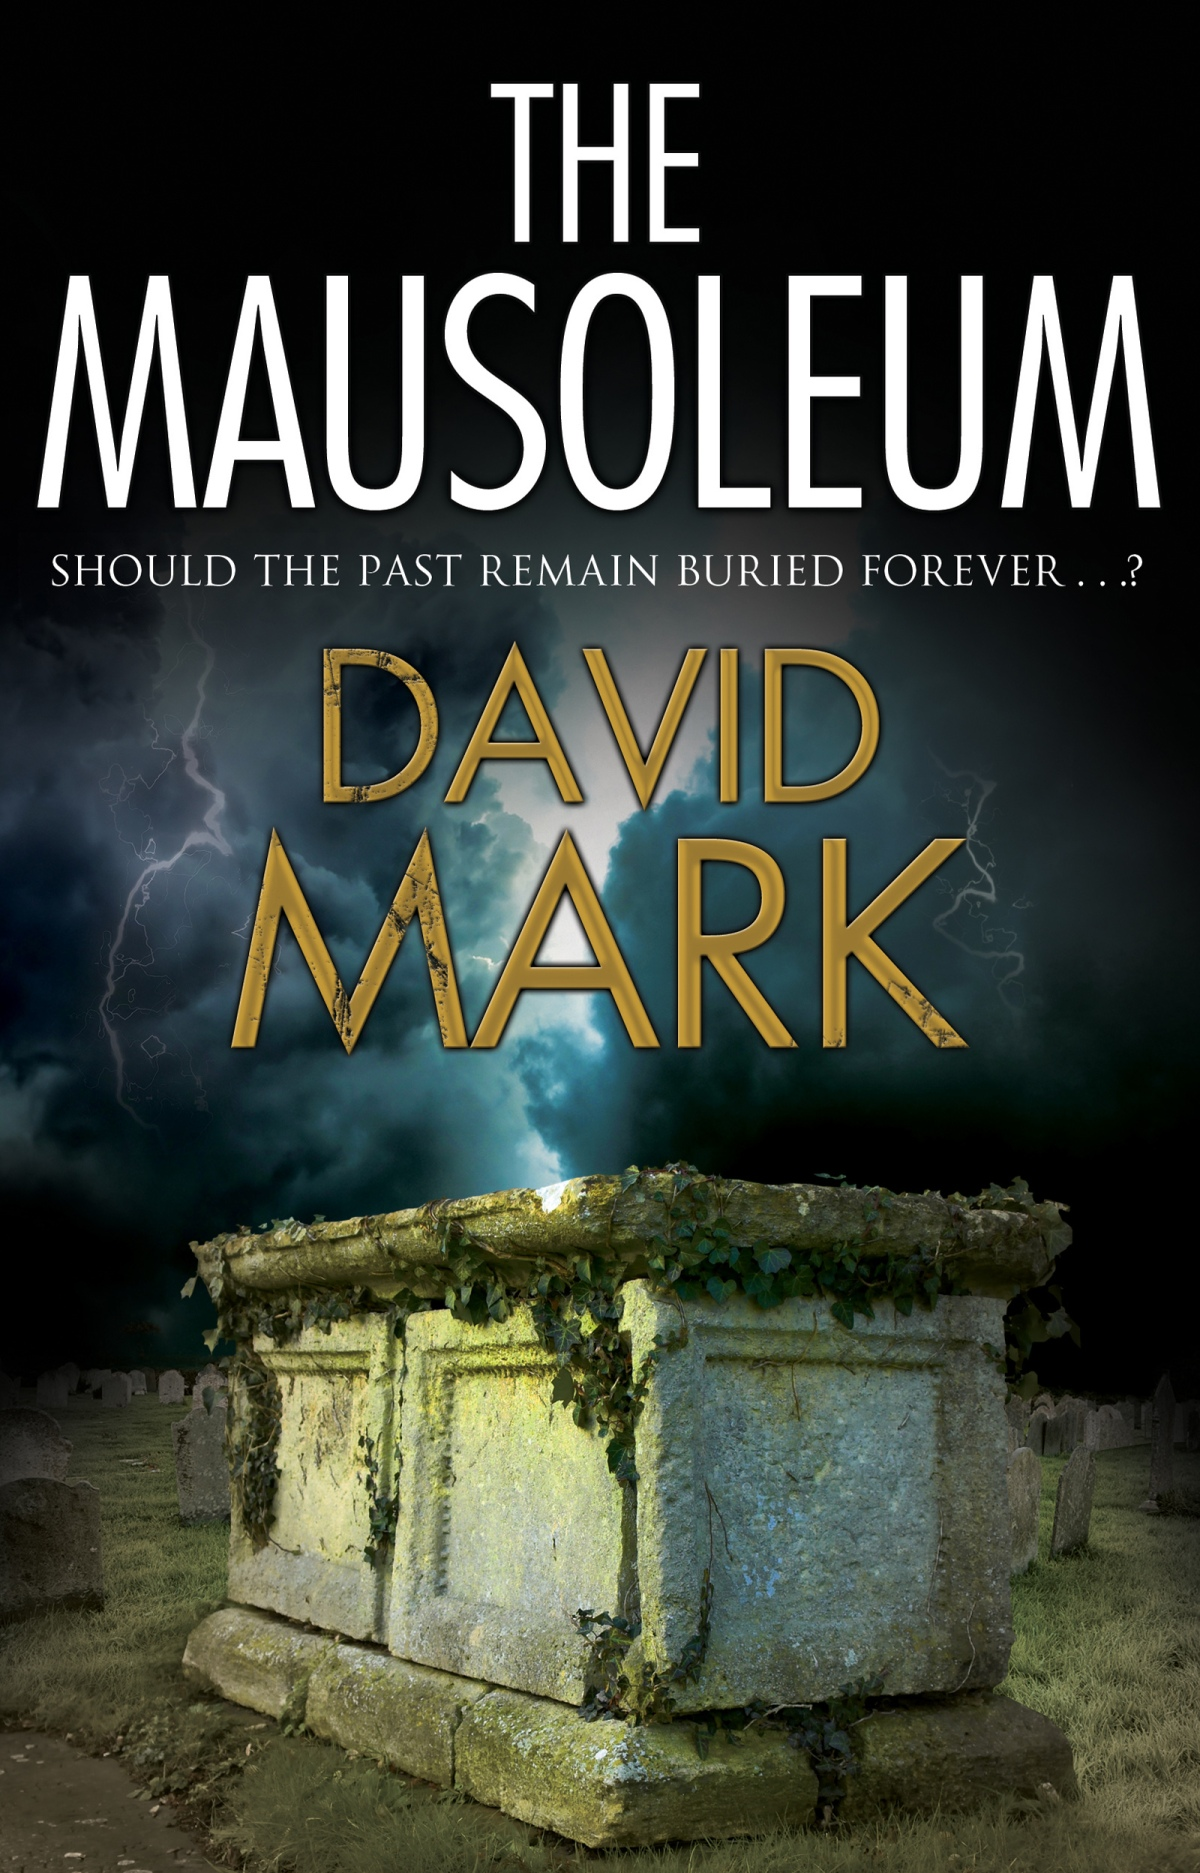 #BlogTour: The mausoleum by David Mark | #LoveBooksGroupTours